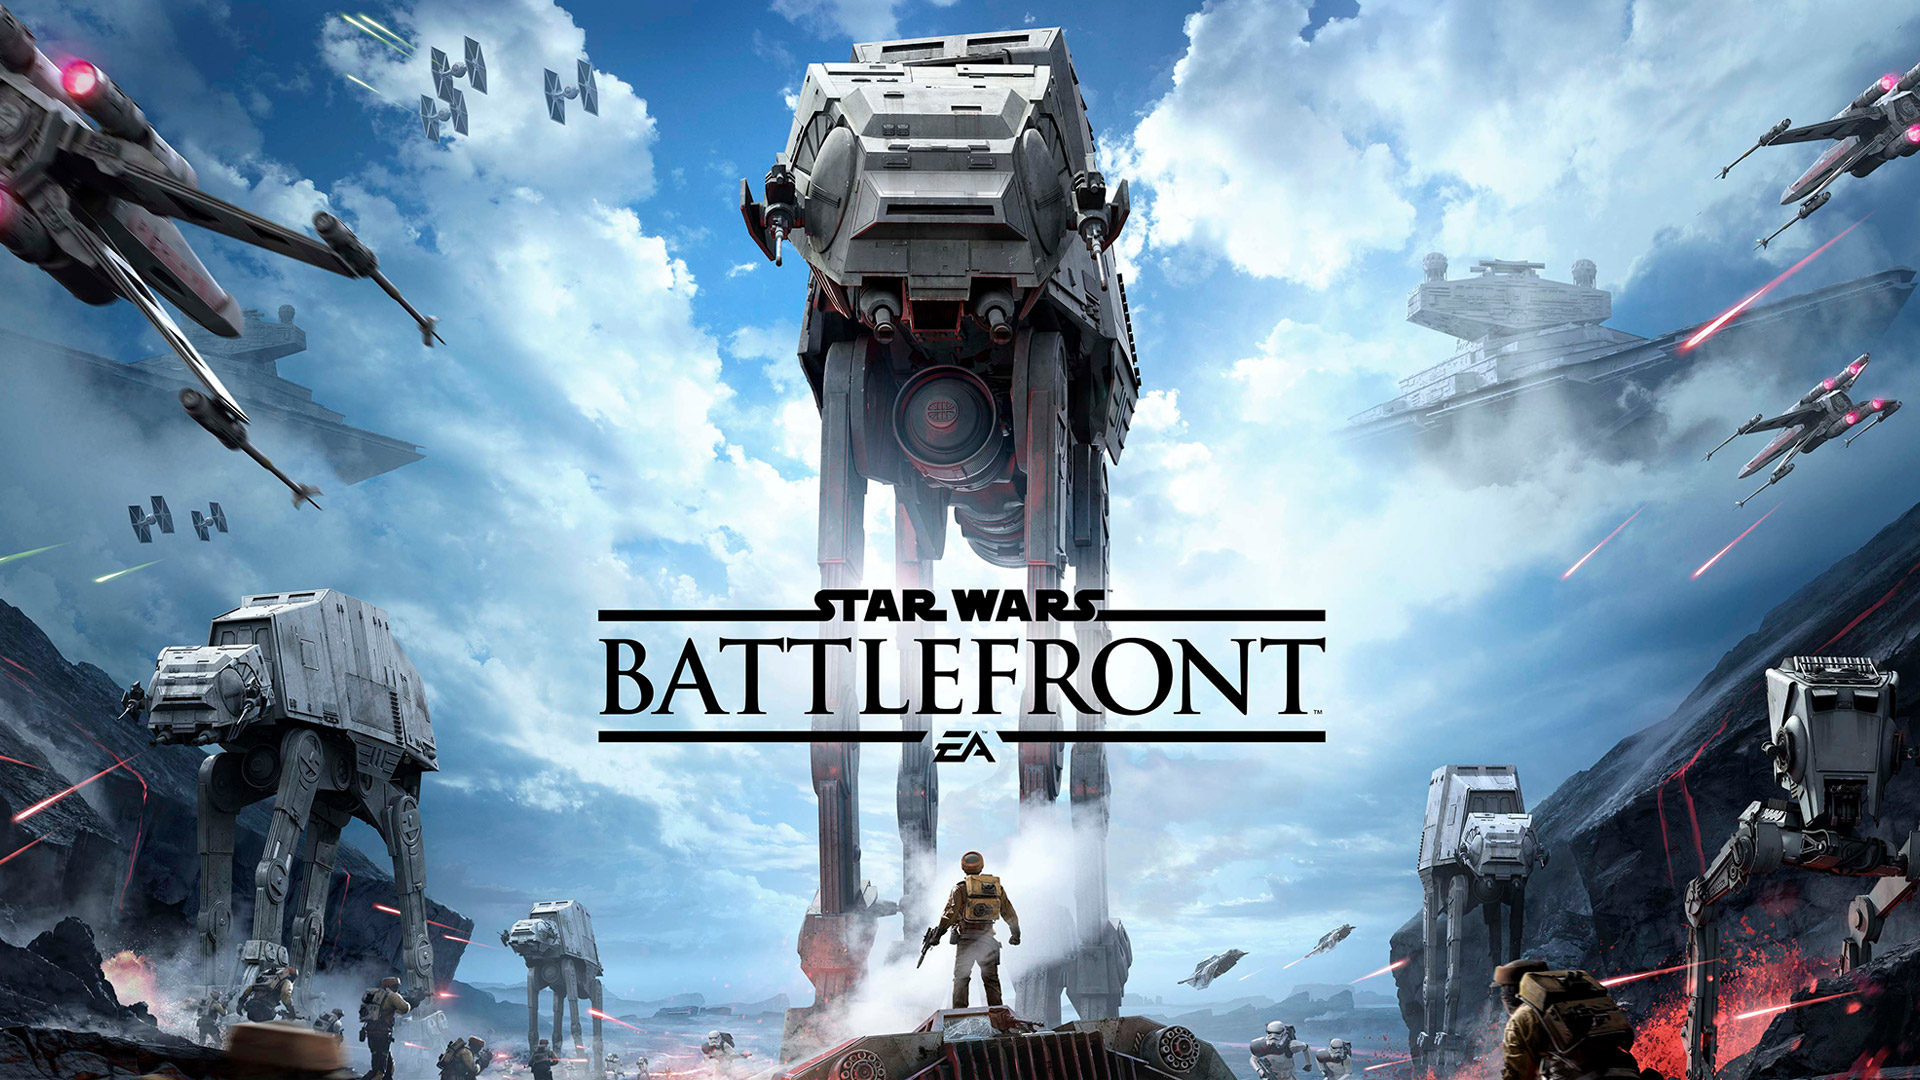 Star Wars Battlefront Review: The Game You Are Looking For?